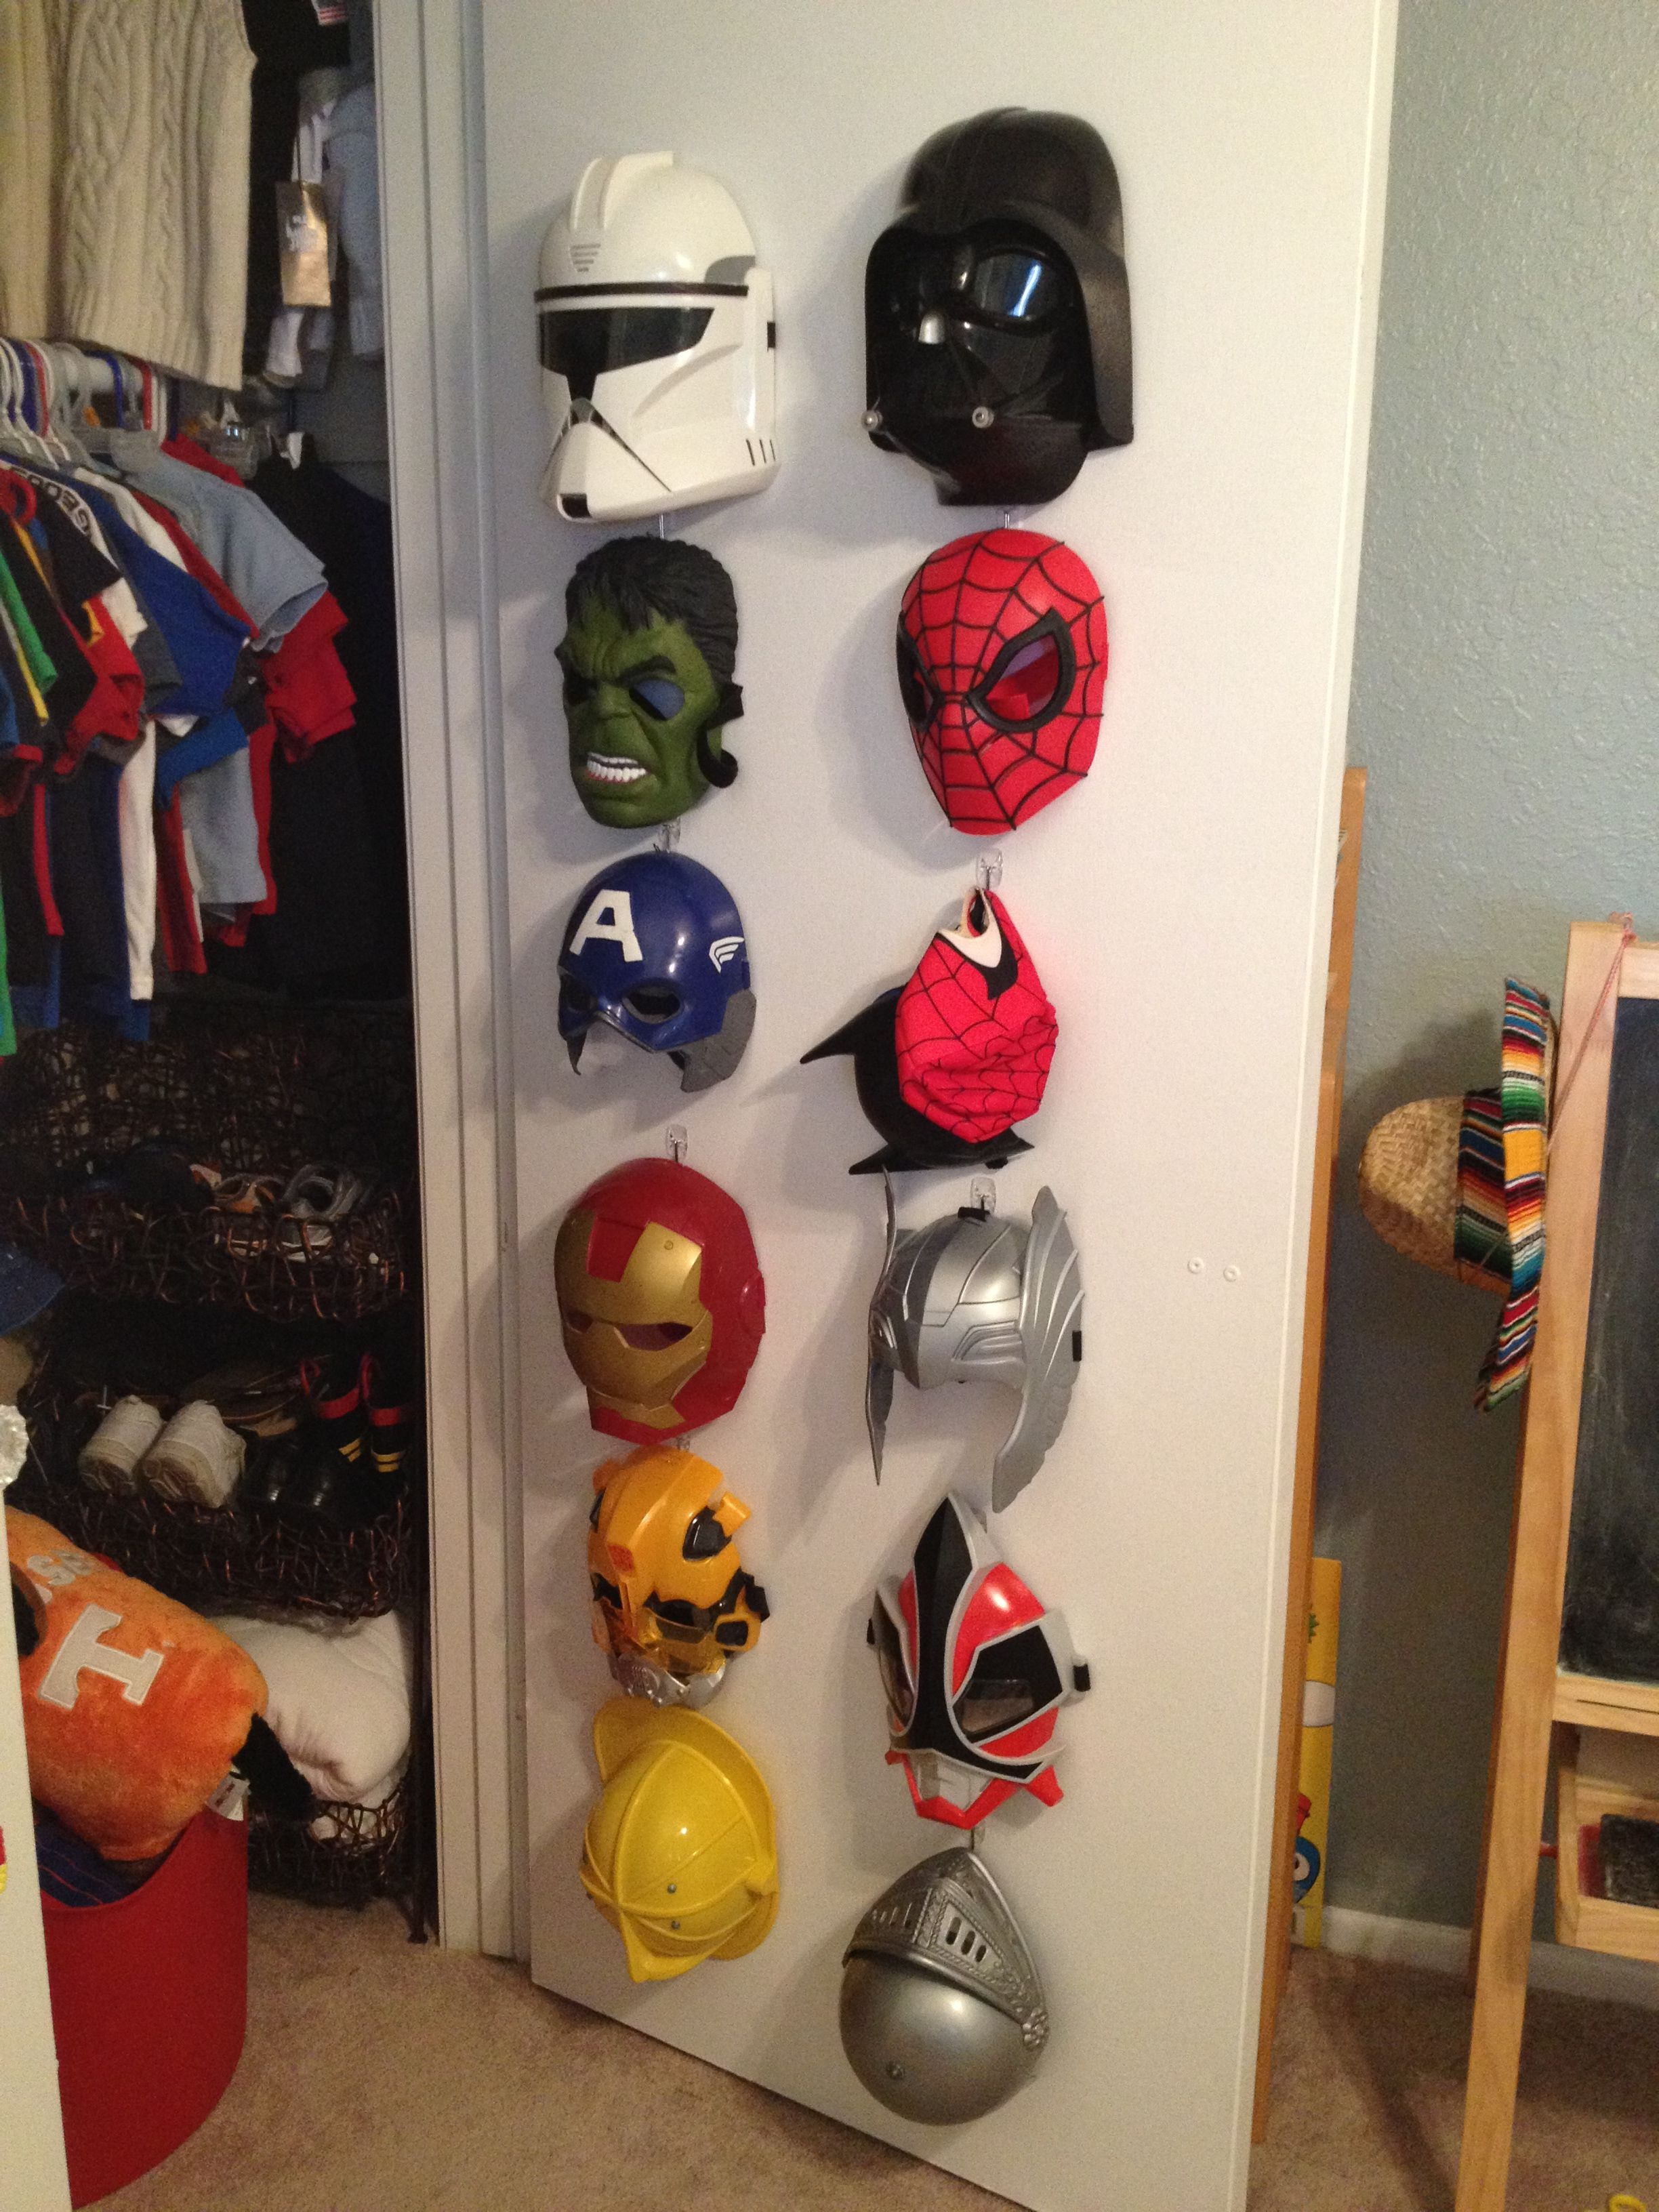 Superhero Room Design: When They Are Not Busy Fighting Crime And Saving The World